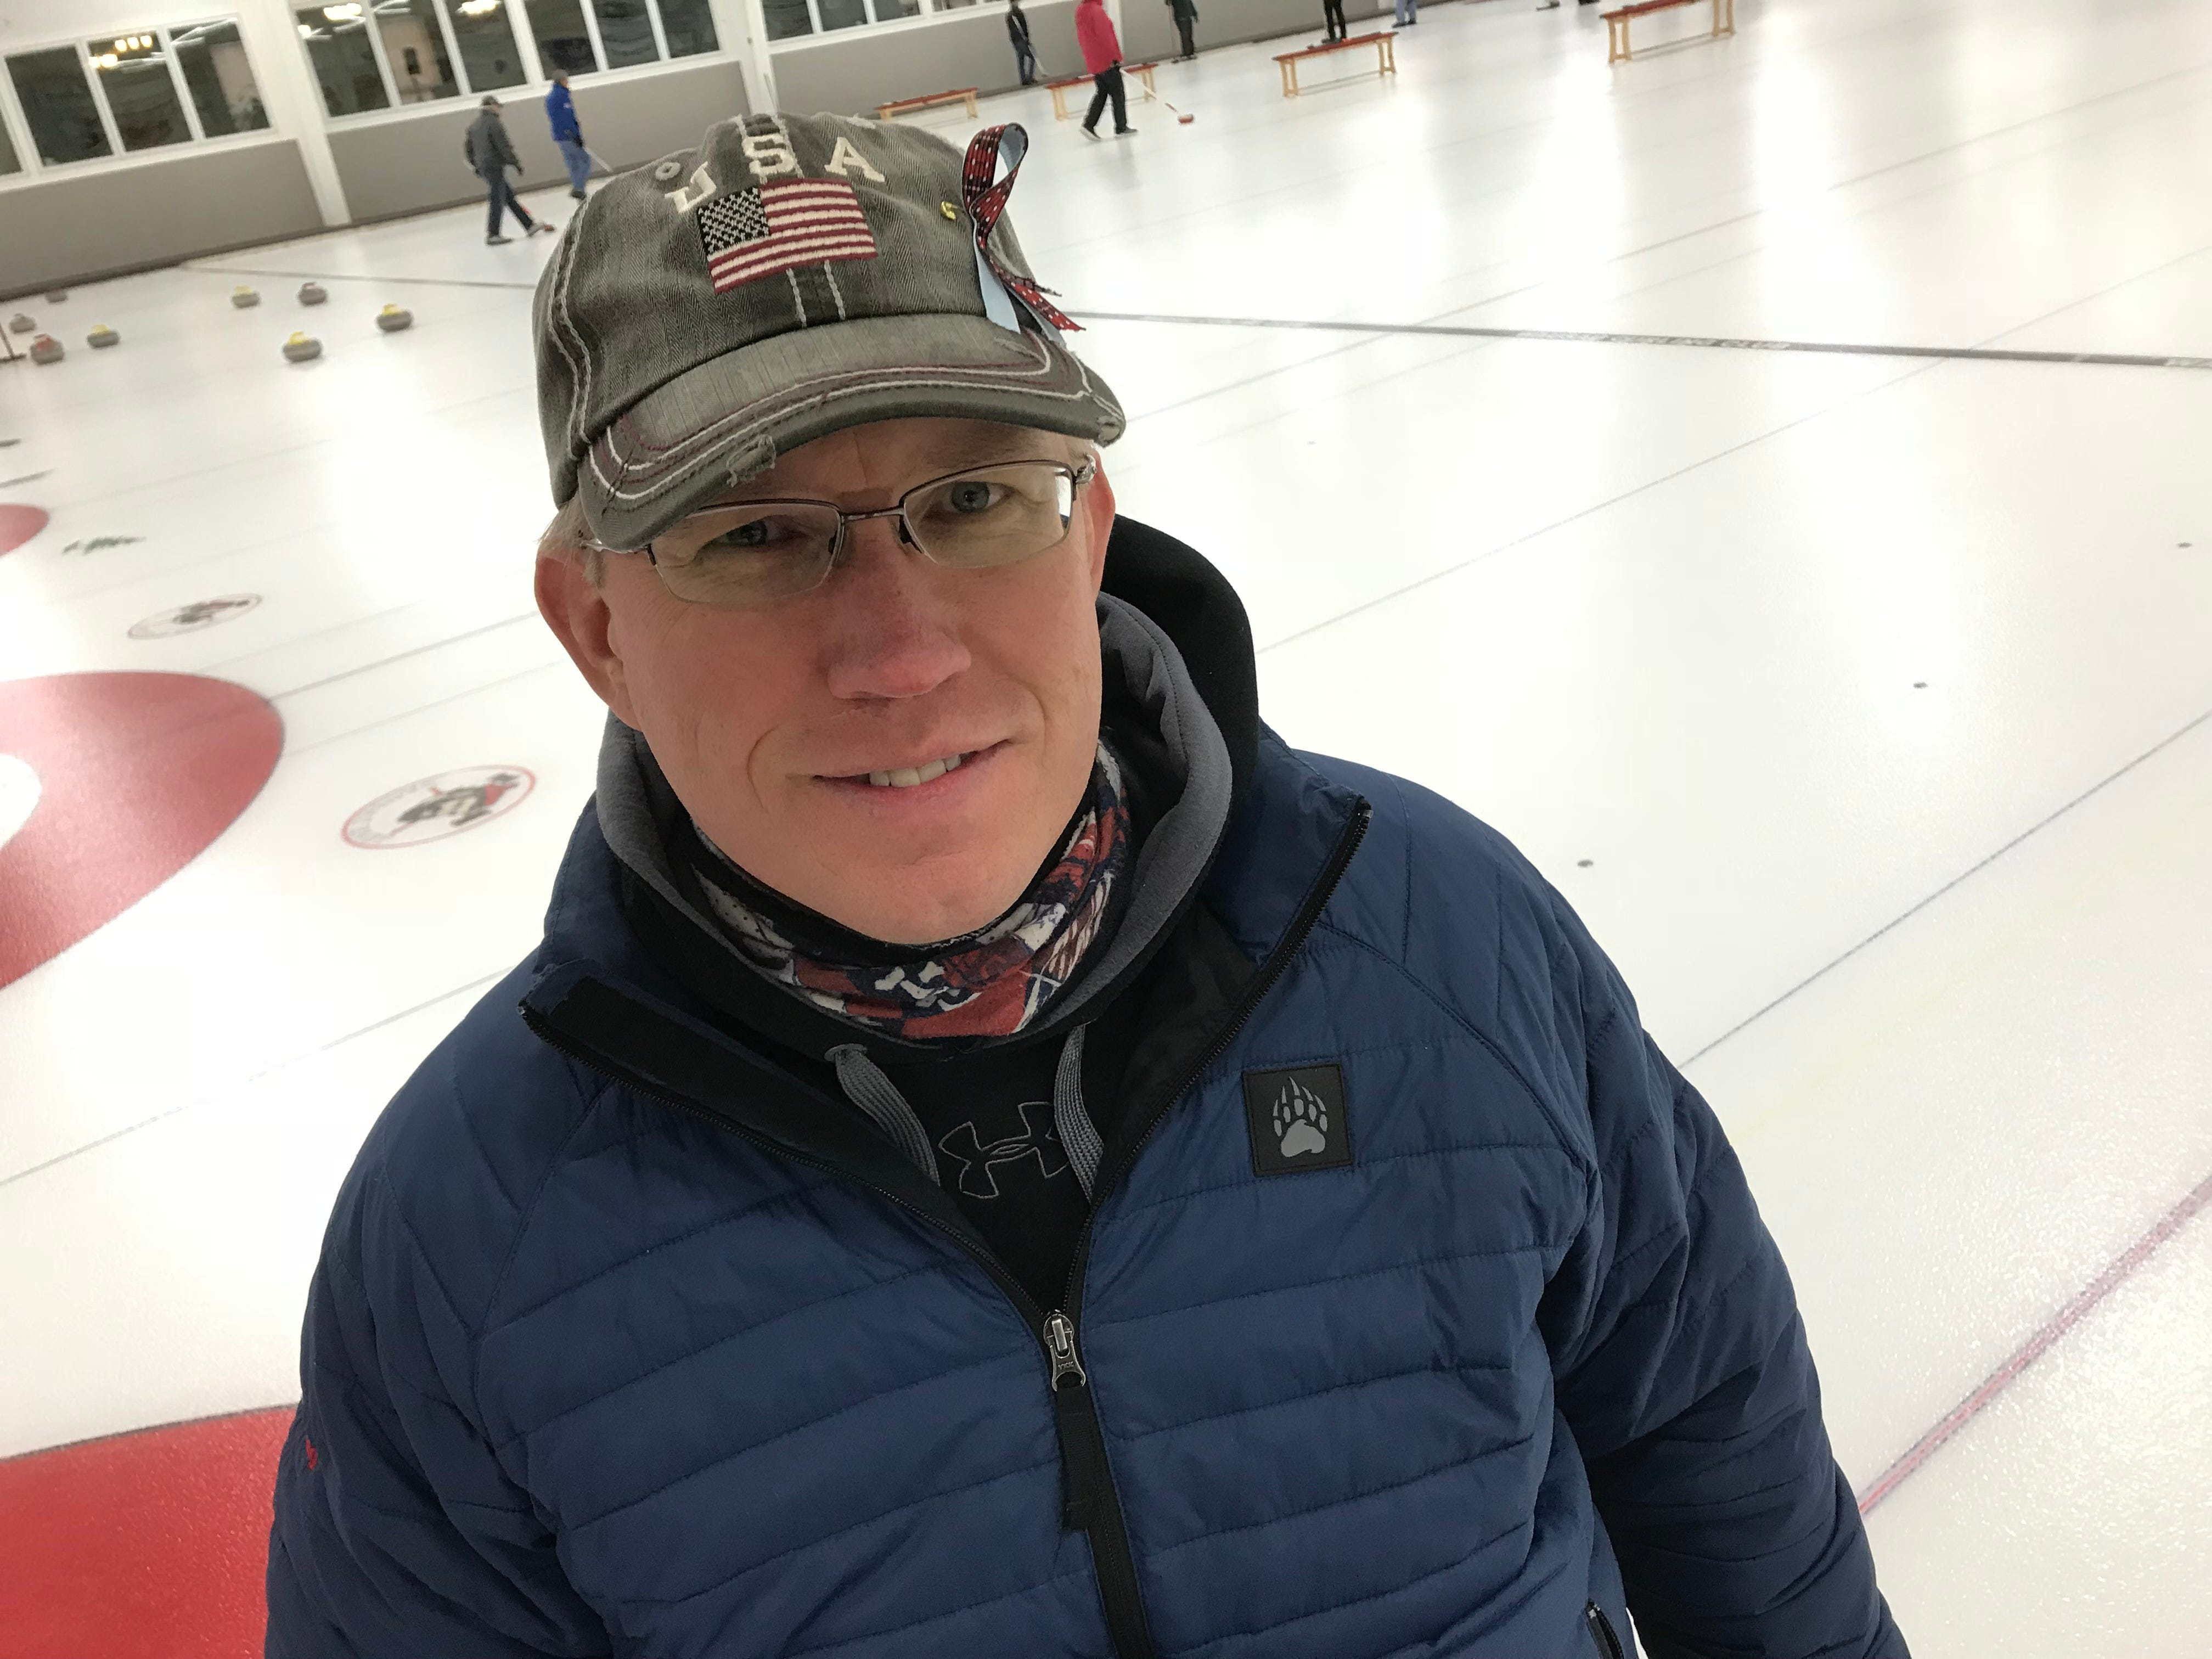 Thums, 42, has been curling since 2013. He's been on the national team for four years, but this is the first time he's been tapped to compete for the United States at an international level.